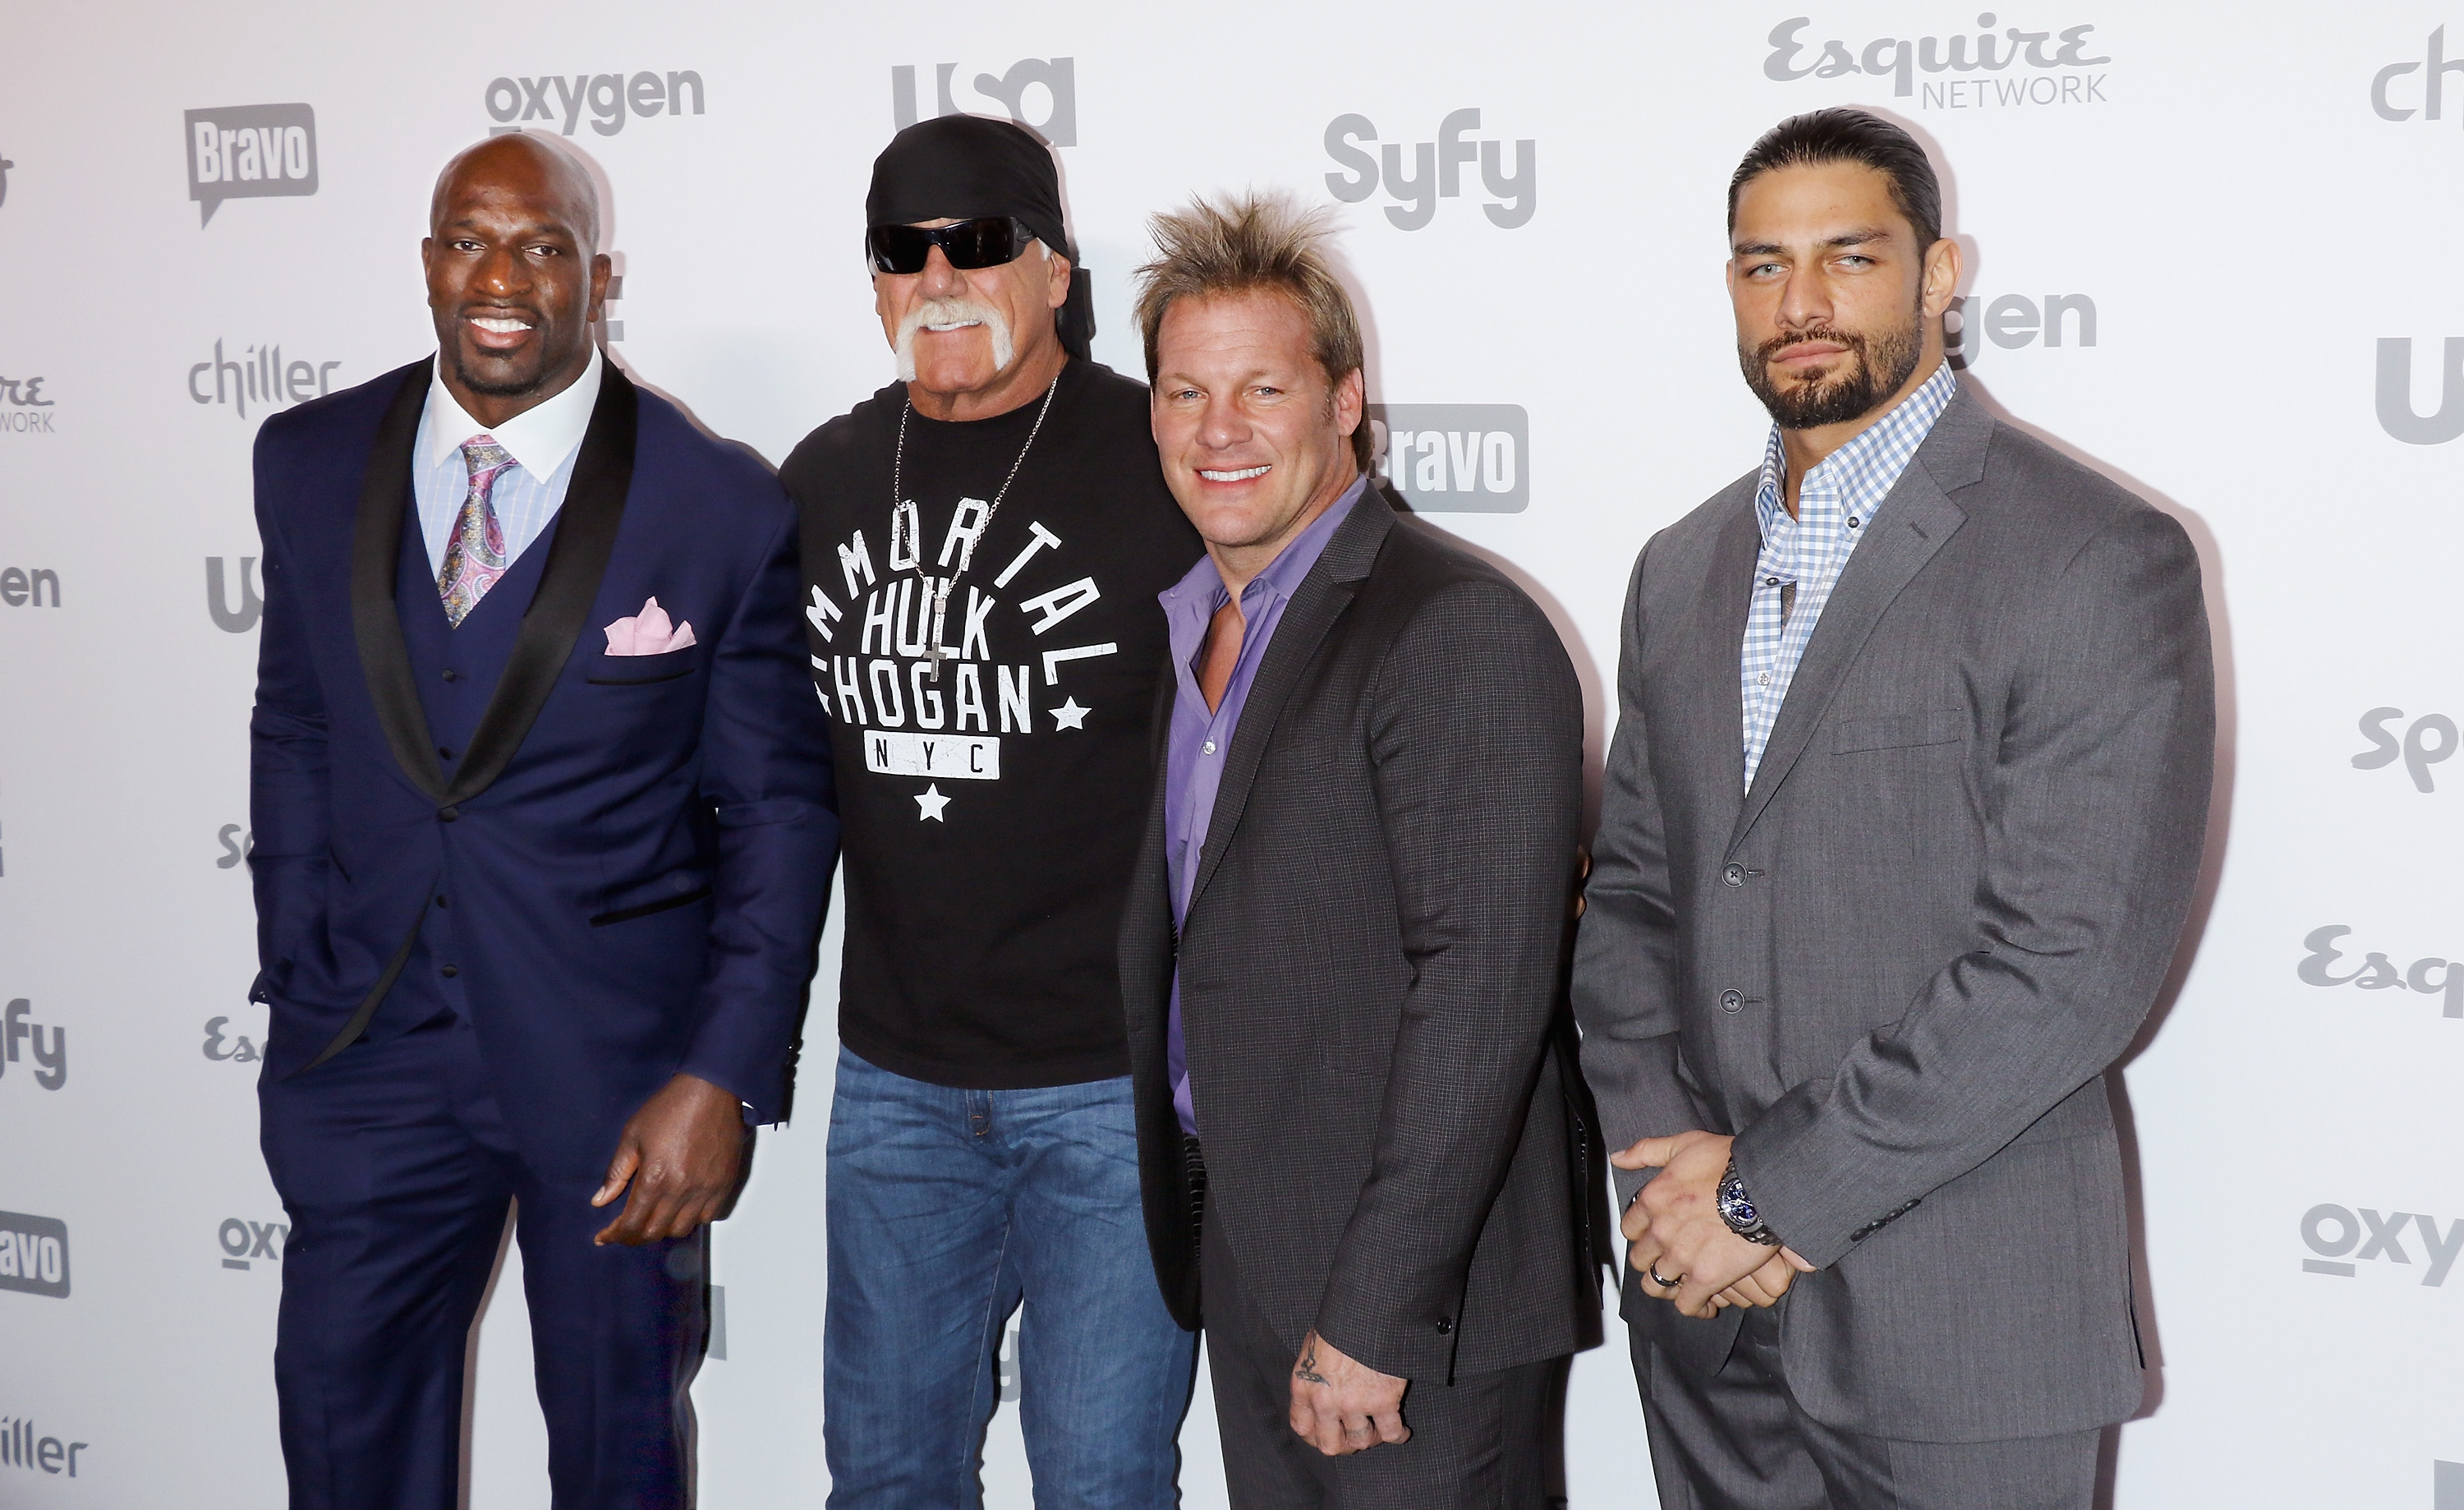 Hulk Hogan, Chris Jericho, Titus O'Neil & Roman Reigns